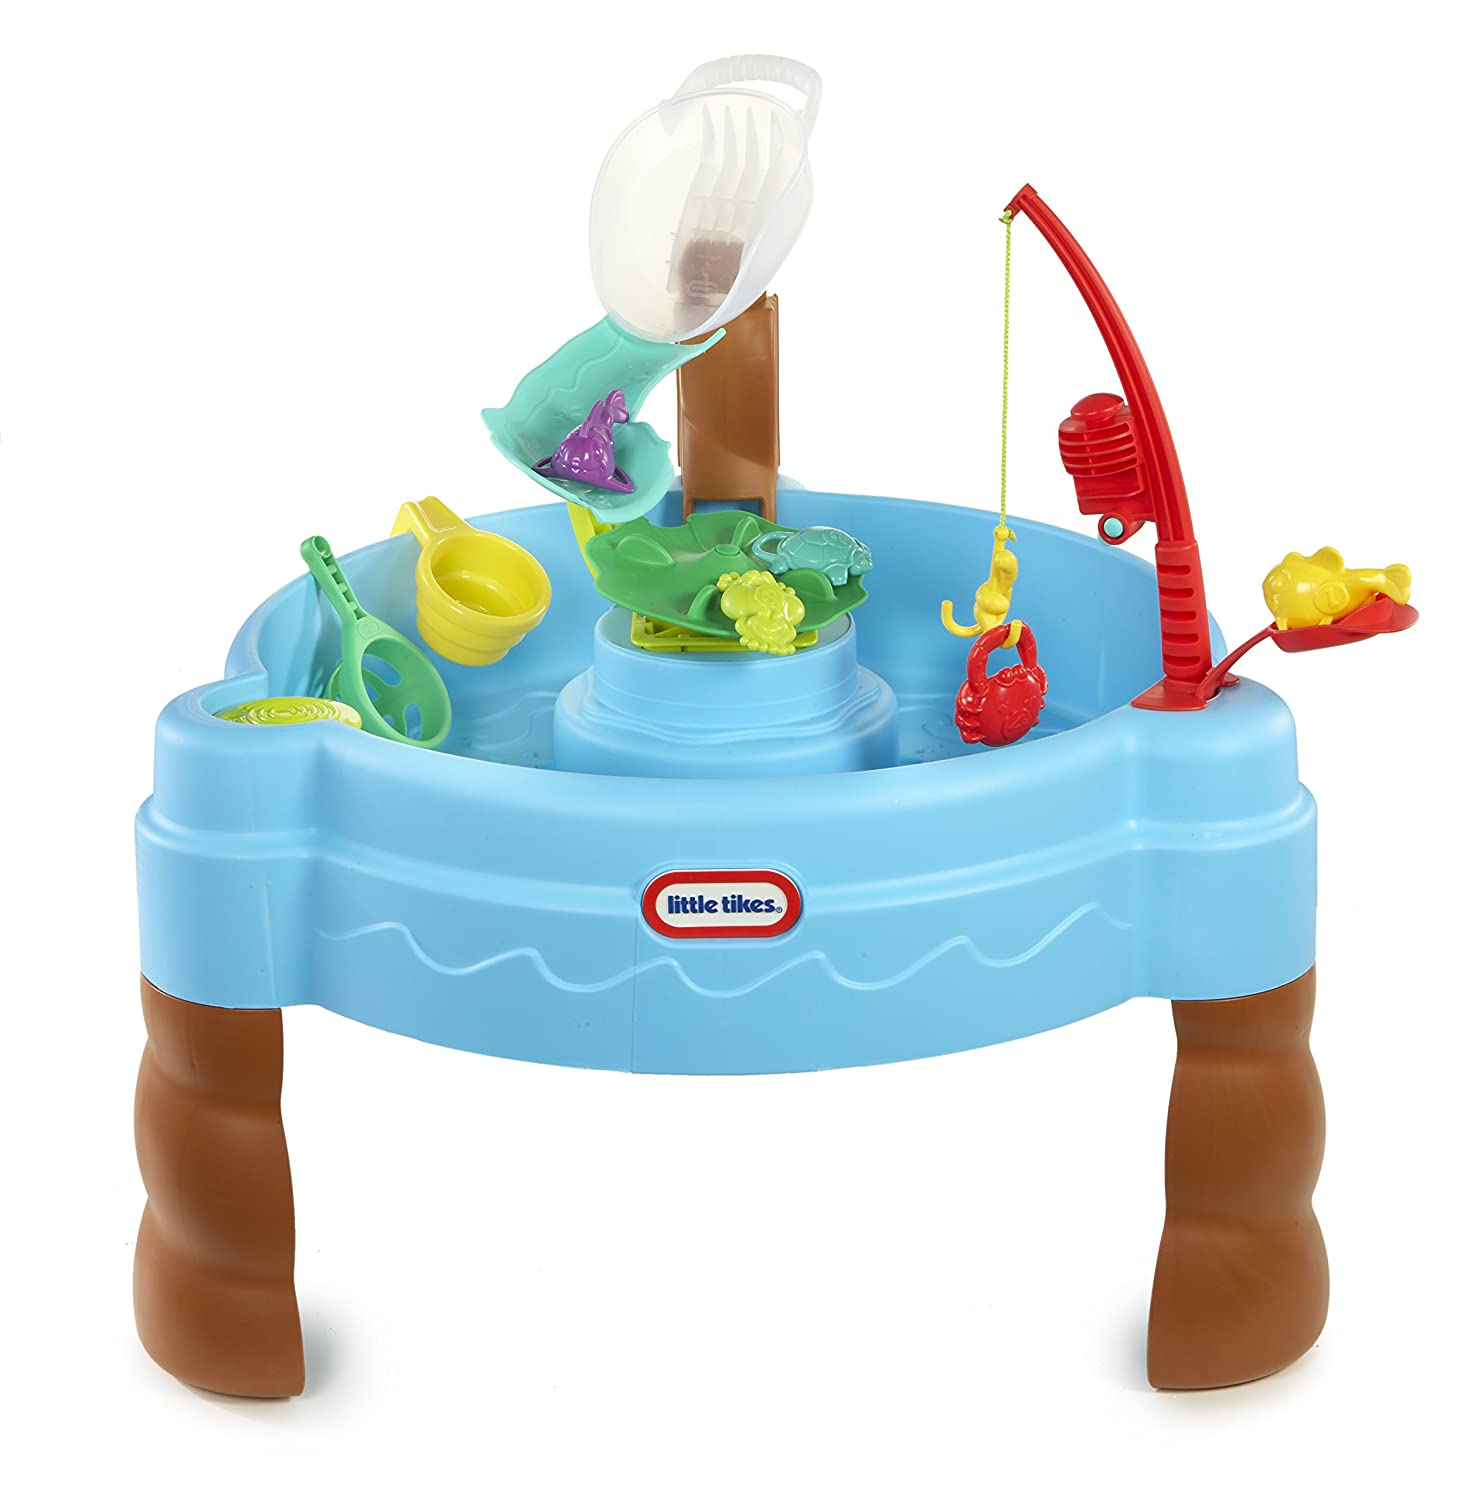 Little Tikes - 637803m - Outillage De Jardin pour Enfants - Fish N Splash Water Table